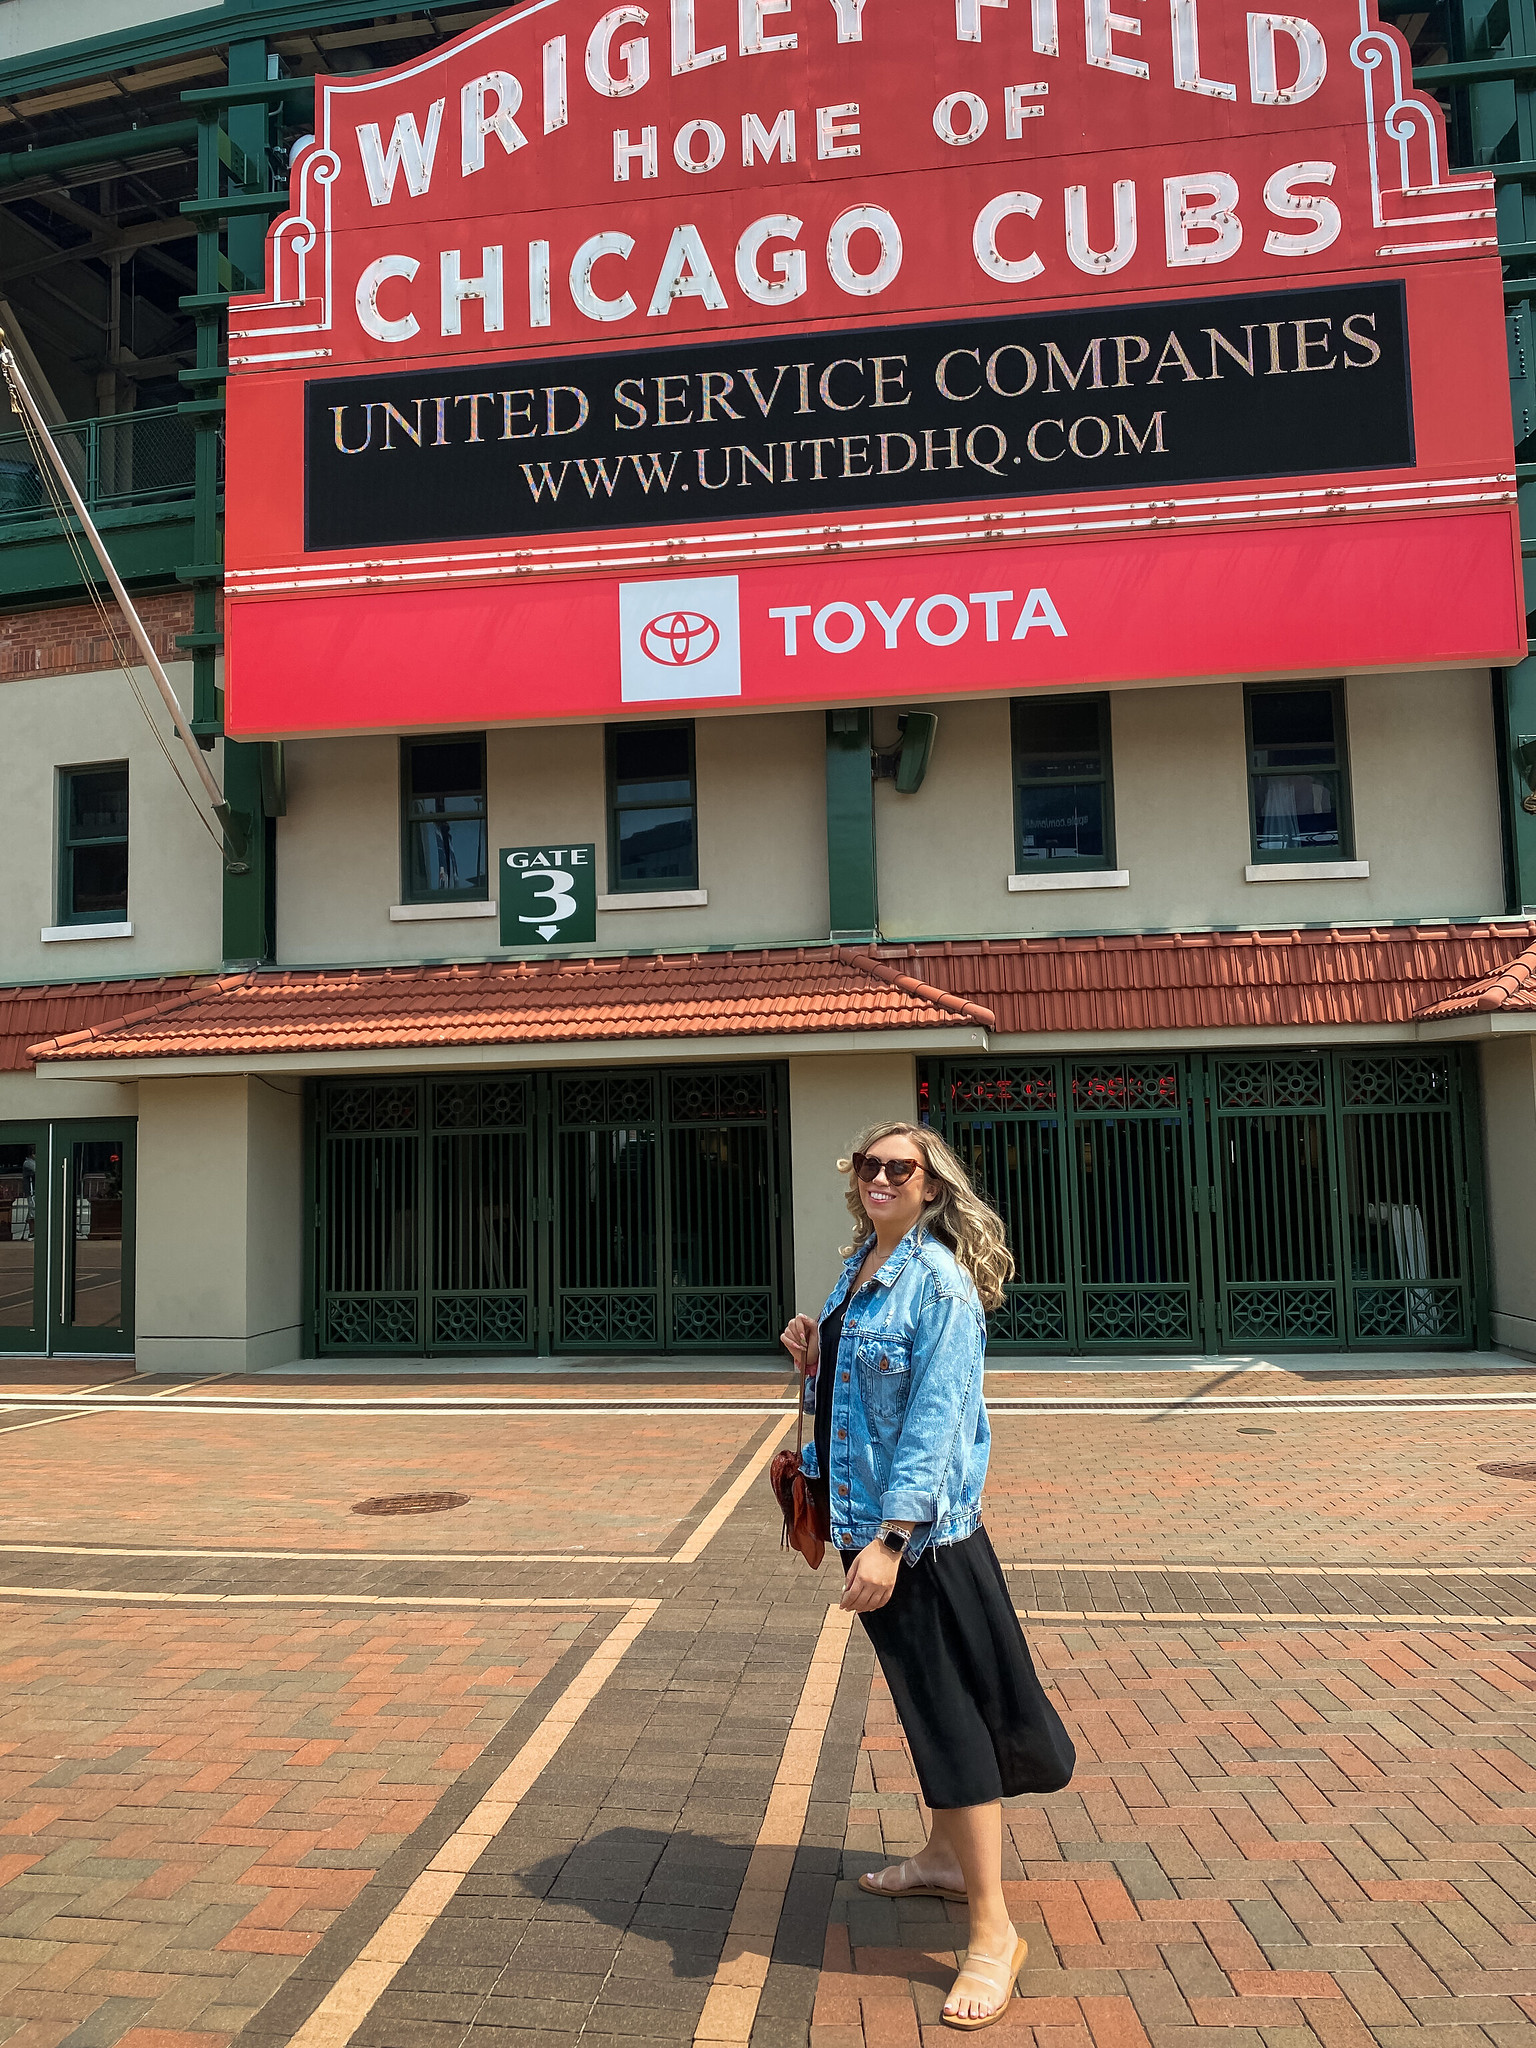 First Time In Chicago: The Perfect 3 Day Itinerary | Chicago Travel Guide | 72 Hours in Chicago | 3 Days in Chicago Itinerary | What to do in Chicago | Where to Stay in Chicago | Ultimate Chicago Bucket List | Top Things to Do in Chicago | First Timer's Guide to Chicago | Wrigley Field